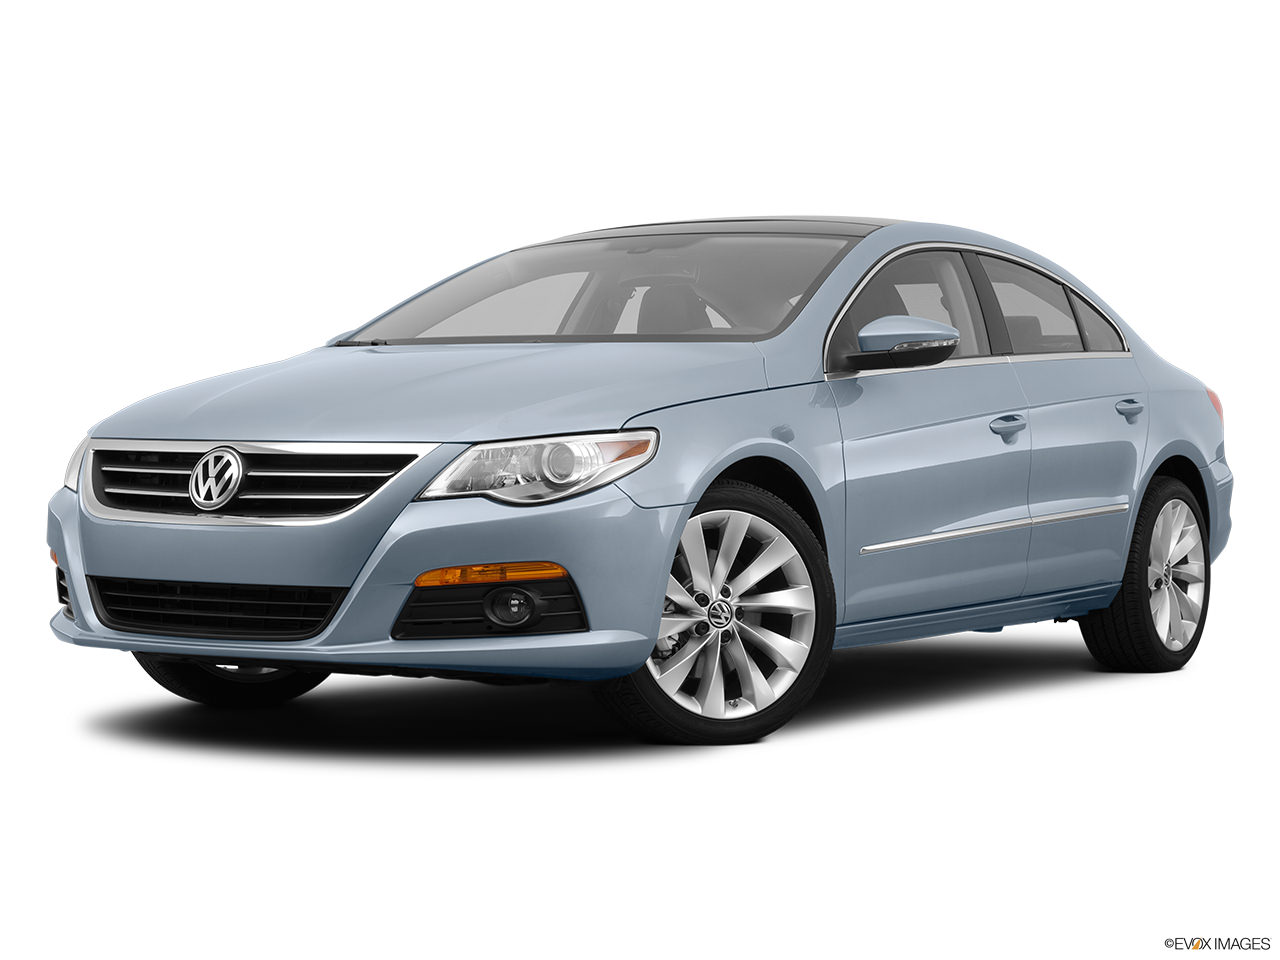 a buyer s guide to the 2012 volkswagen cc yourmechanic advice rh yourmechanic com Edmunds New Car Buyers Guide Used Car Buyers Guide